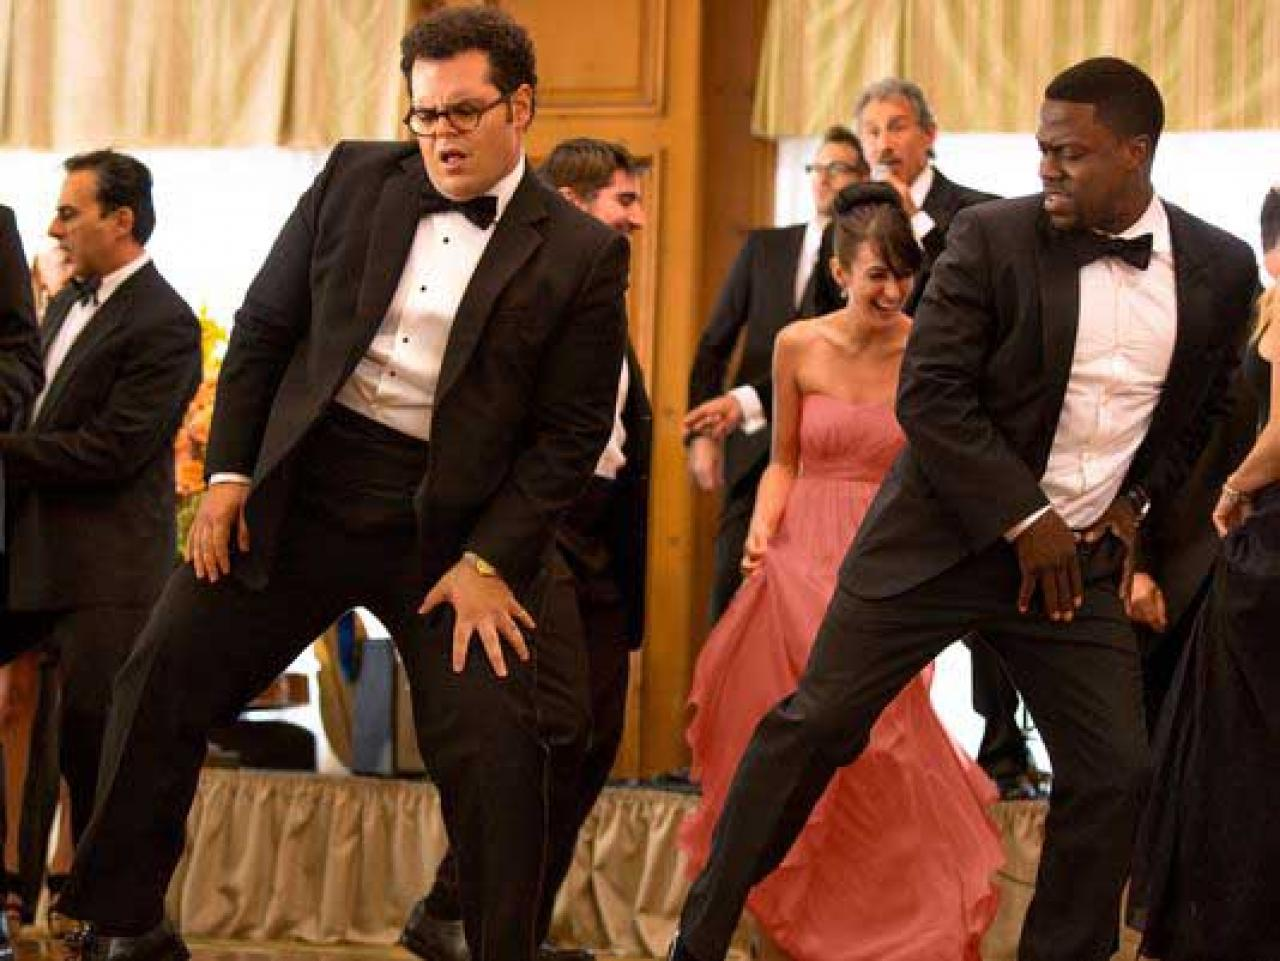 The Wedding Ringer Attempts To Play It Both Ways Fails At Either